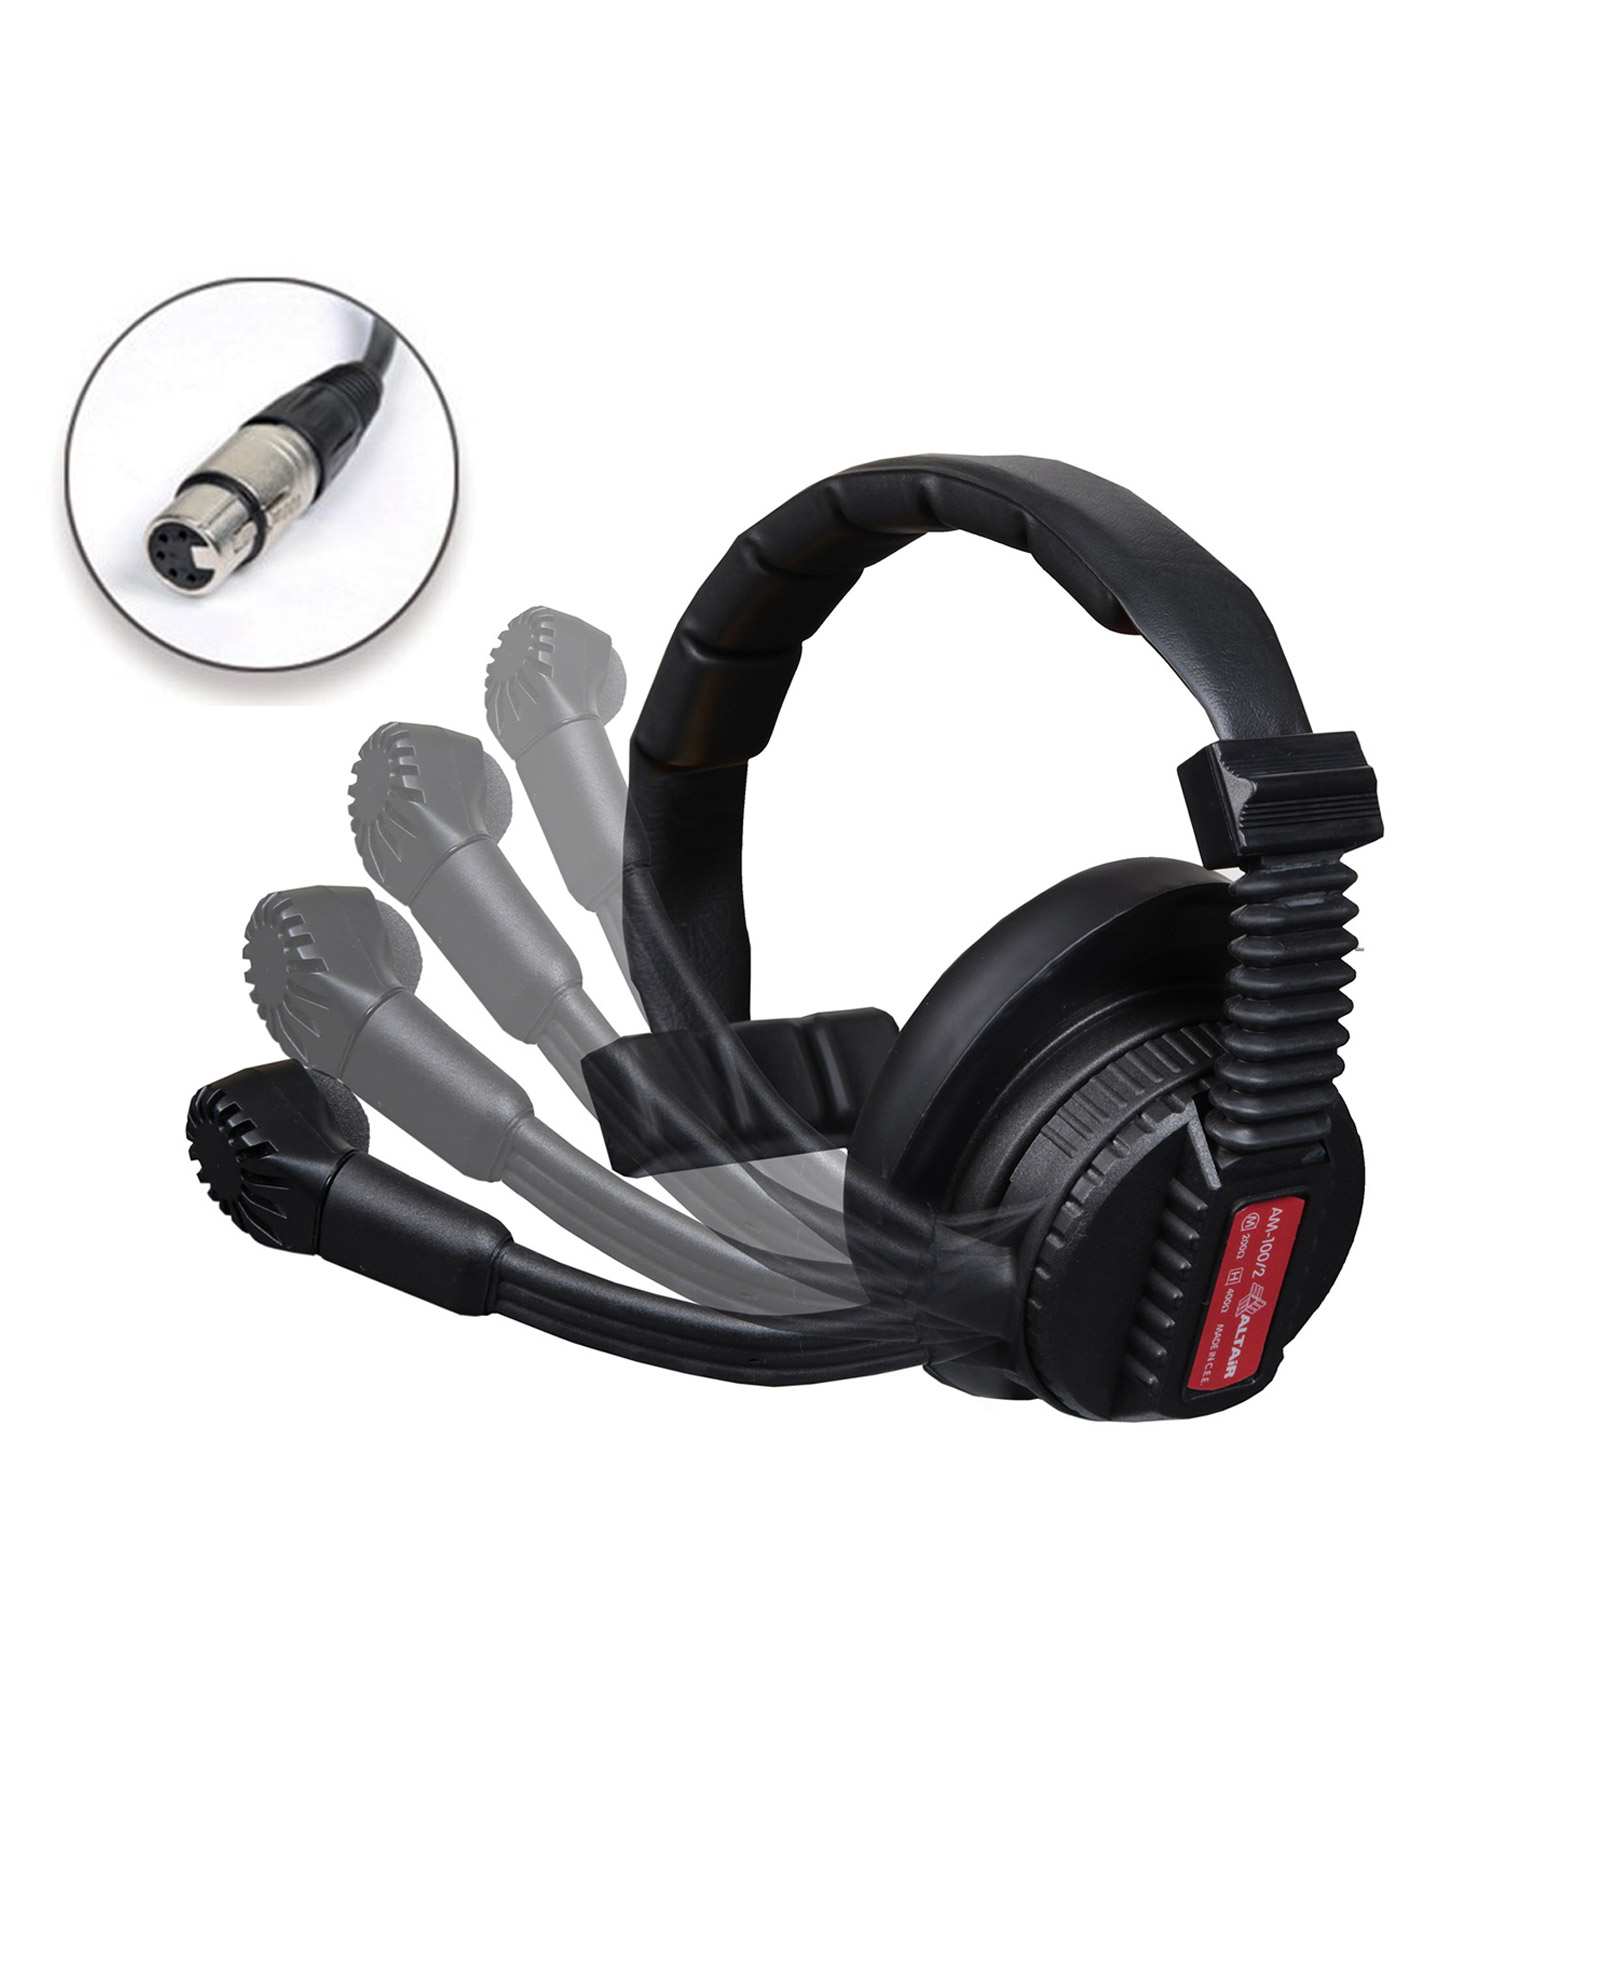 Altair Am 100 2s Single Muff Comms Headset With Mic Boom Switch